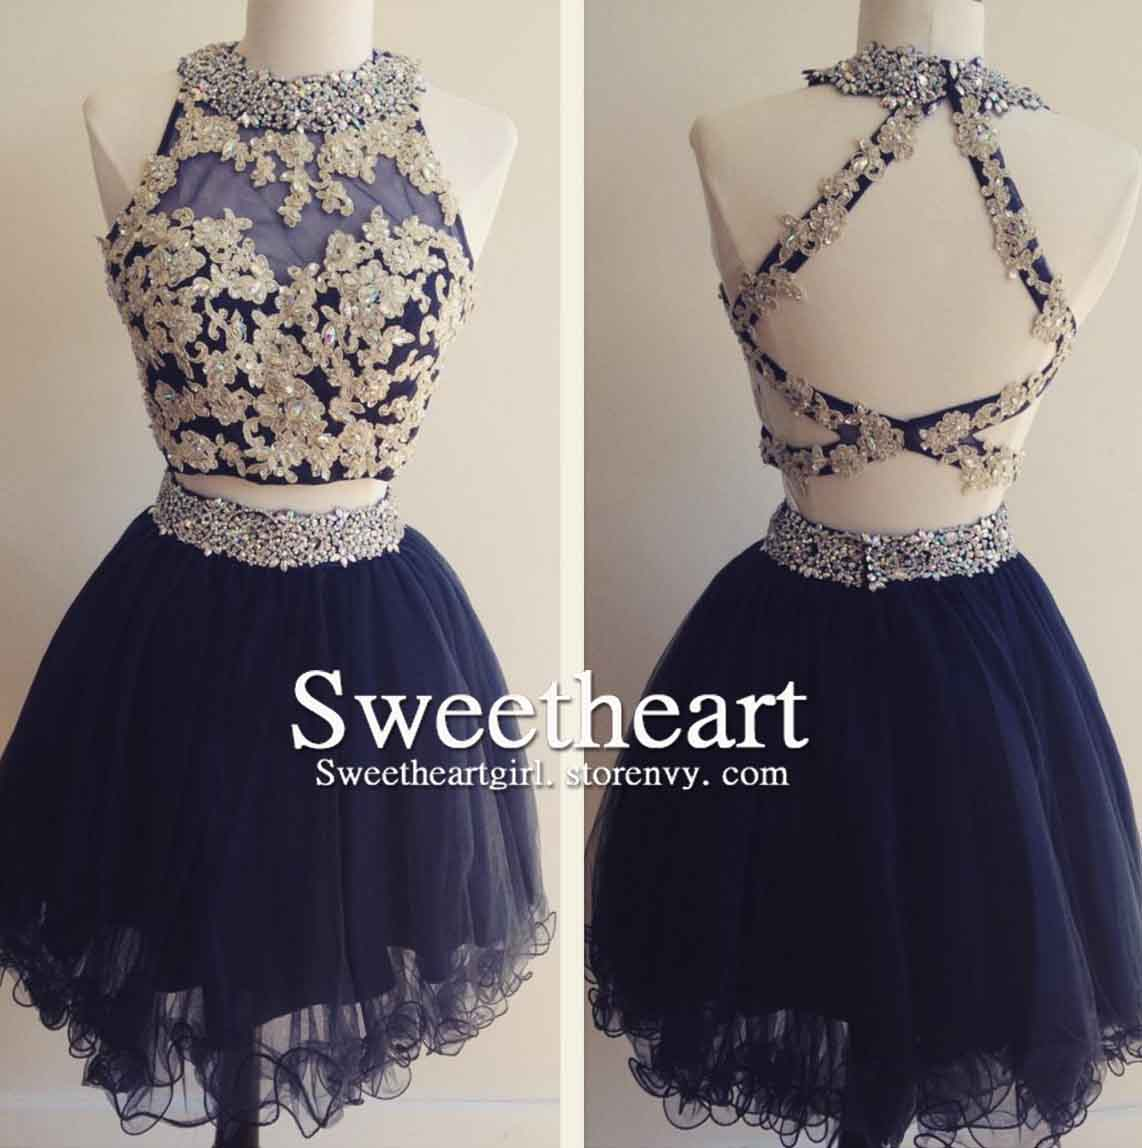 1dc03ff4bdd4 Sweetheart Girl | Dark blue tulle lace 2 pieces short prom dress,  homecoming dress | Online Store Powered by Storenvy